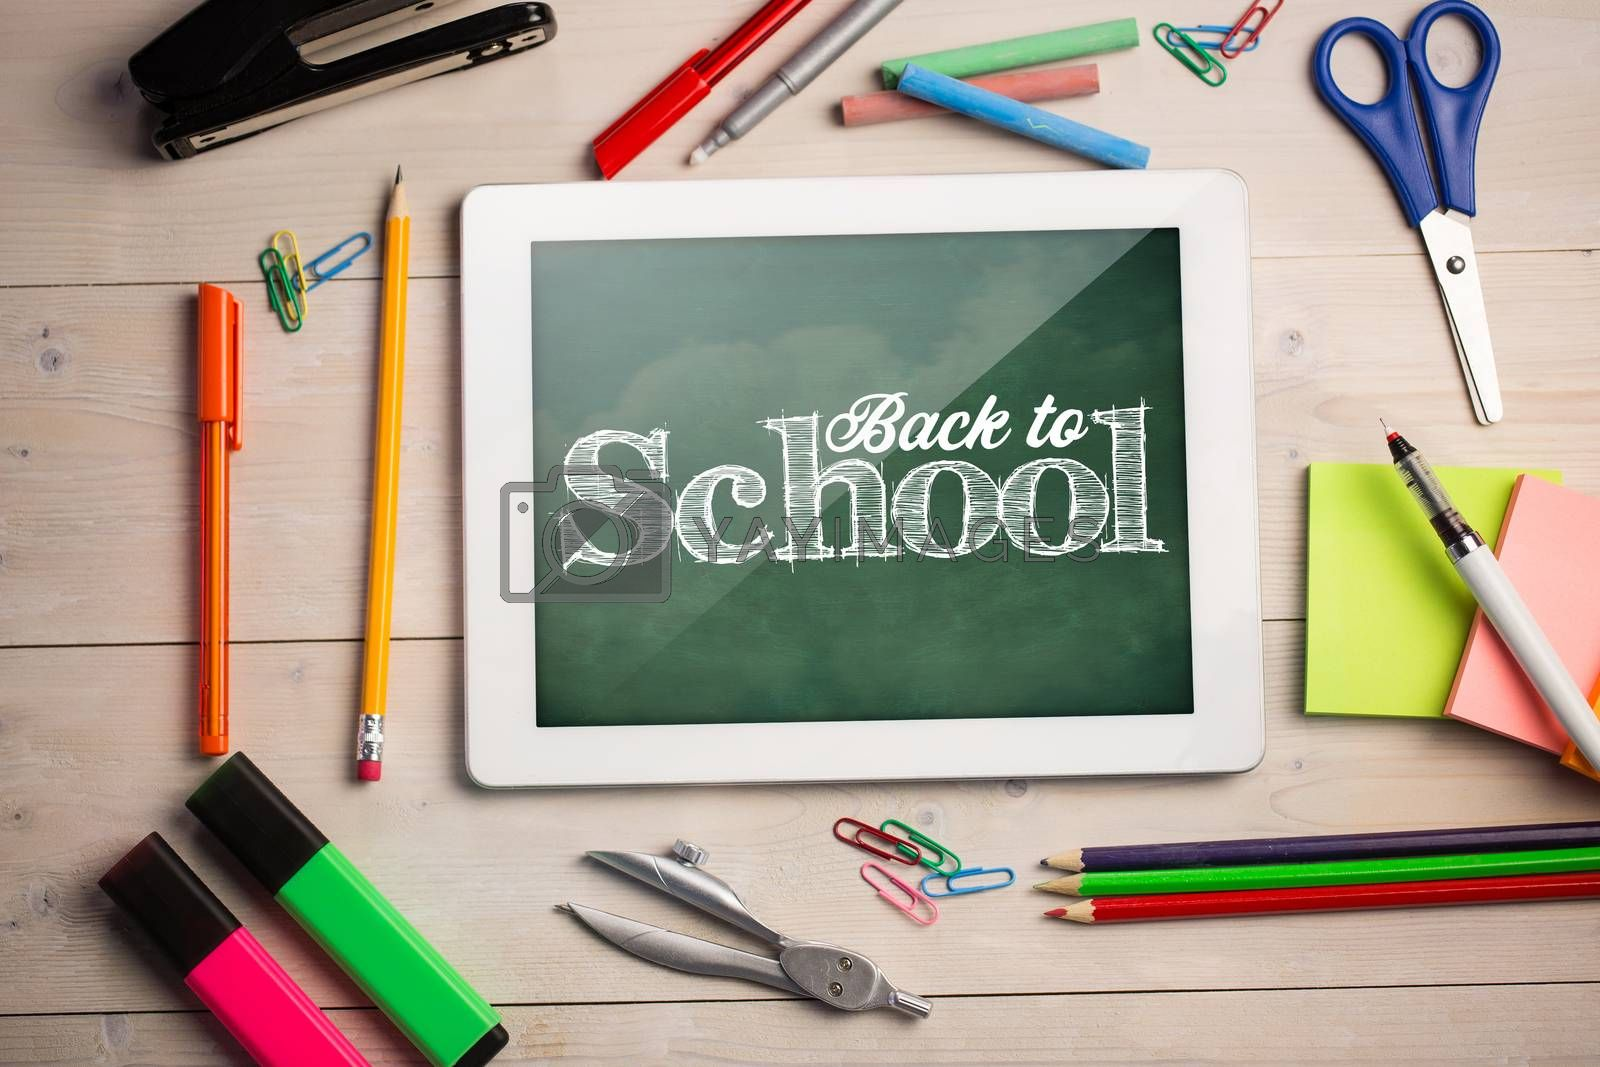 Composite image of back to school text against white background by Wavebreakmedia